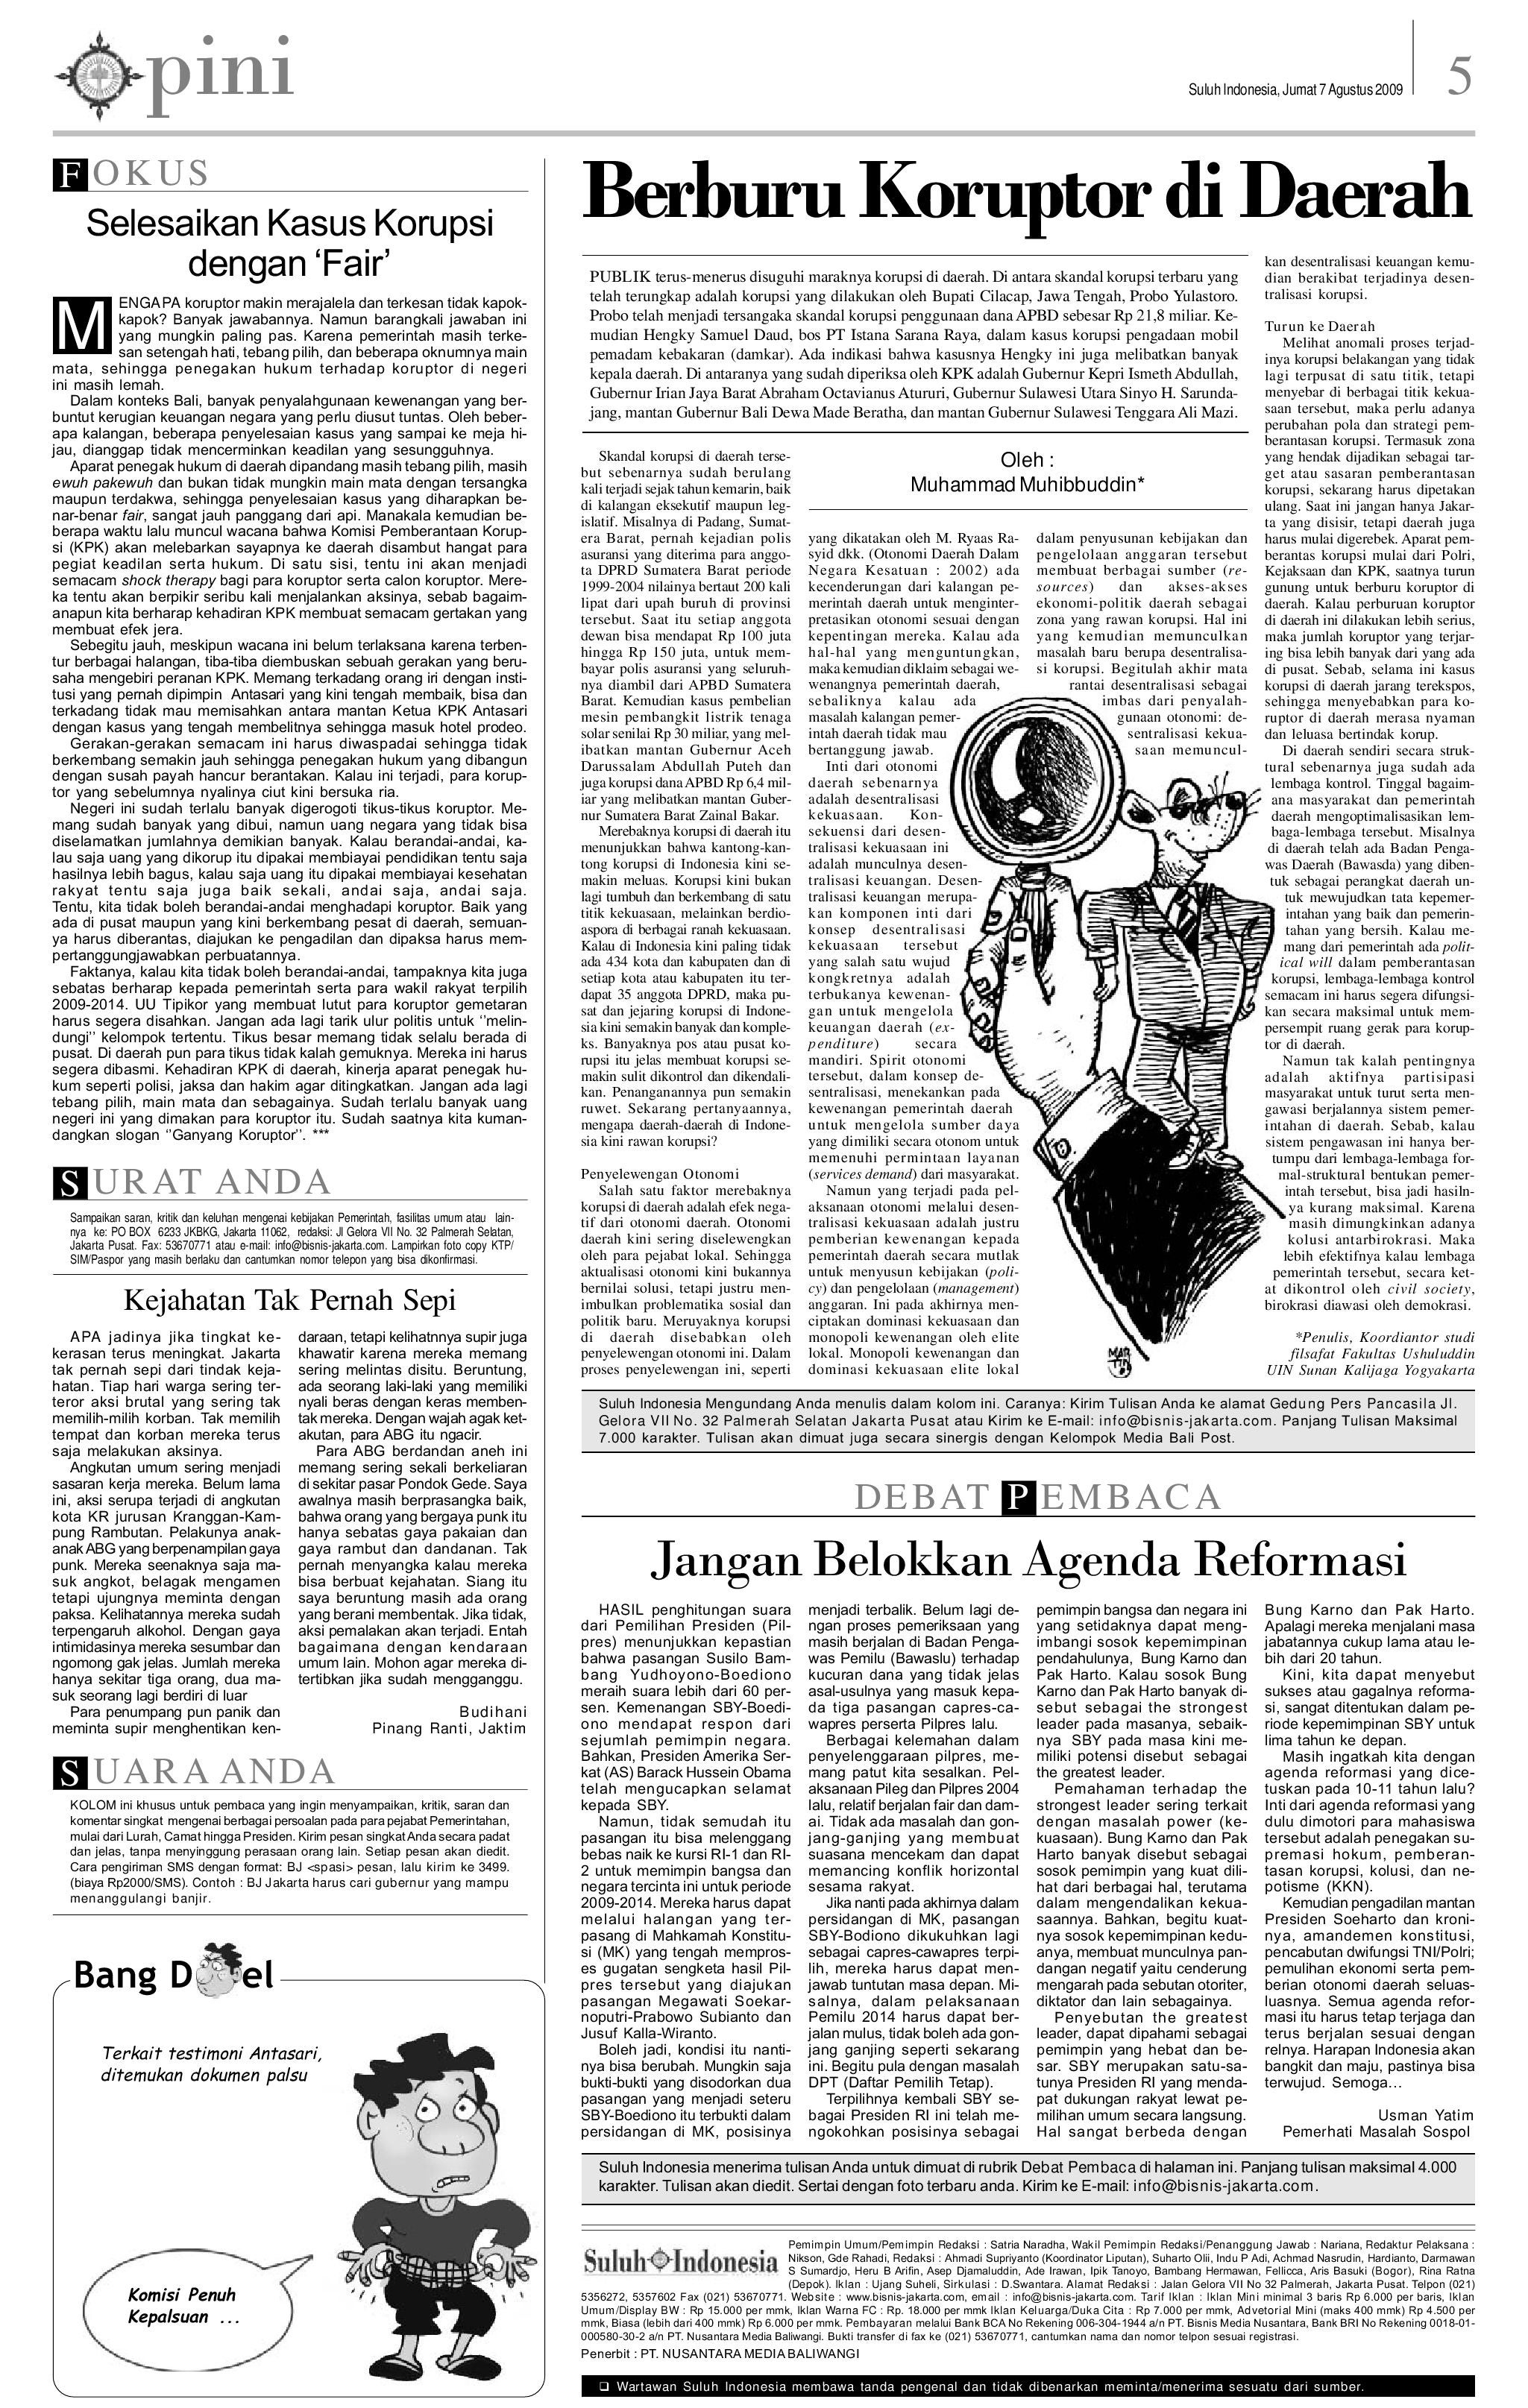 Edisi 07 Agustus 2009 Suluh Indonesia By E Paper Kmb Issuu